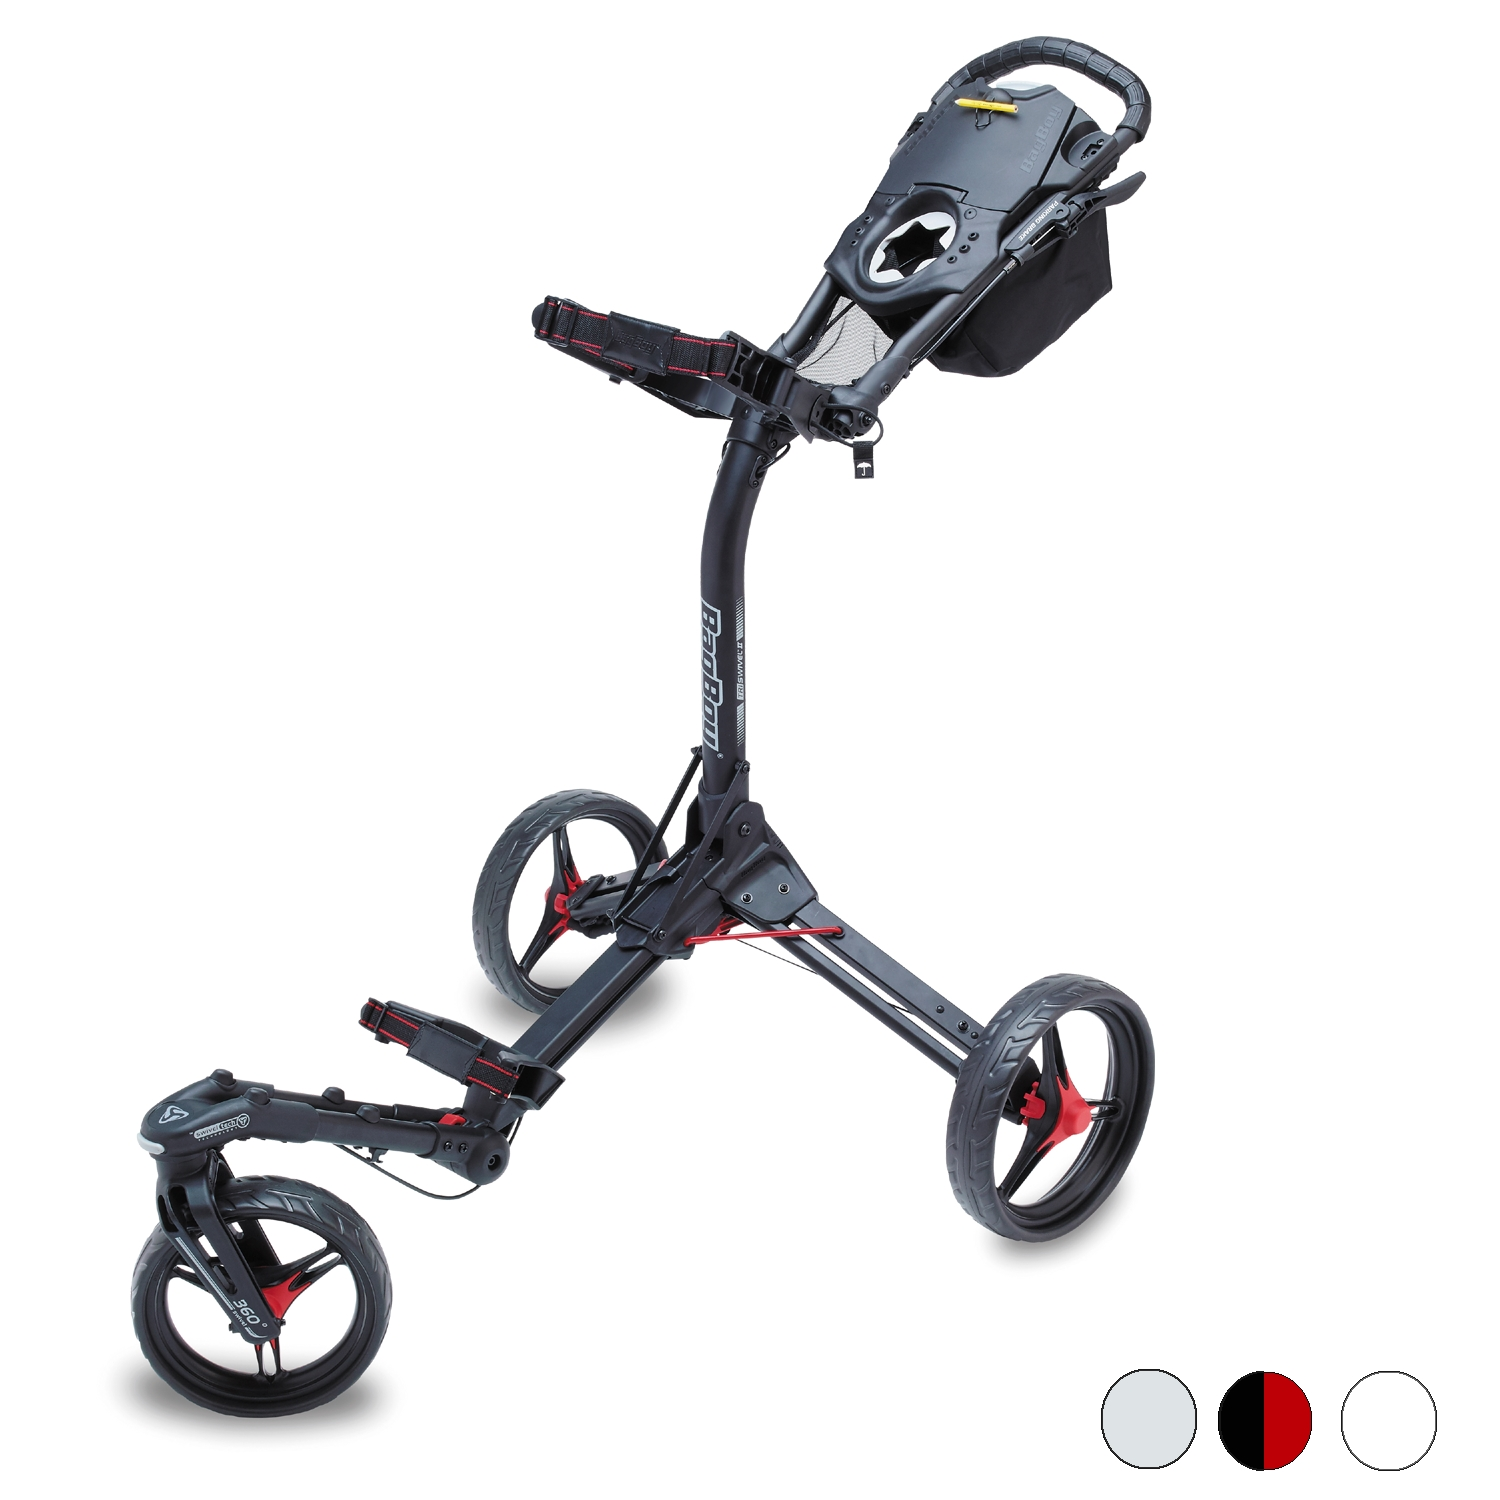 Bag Boy Tri Swivel Deluxe 2.0 Trolley